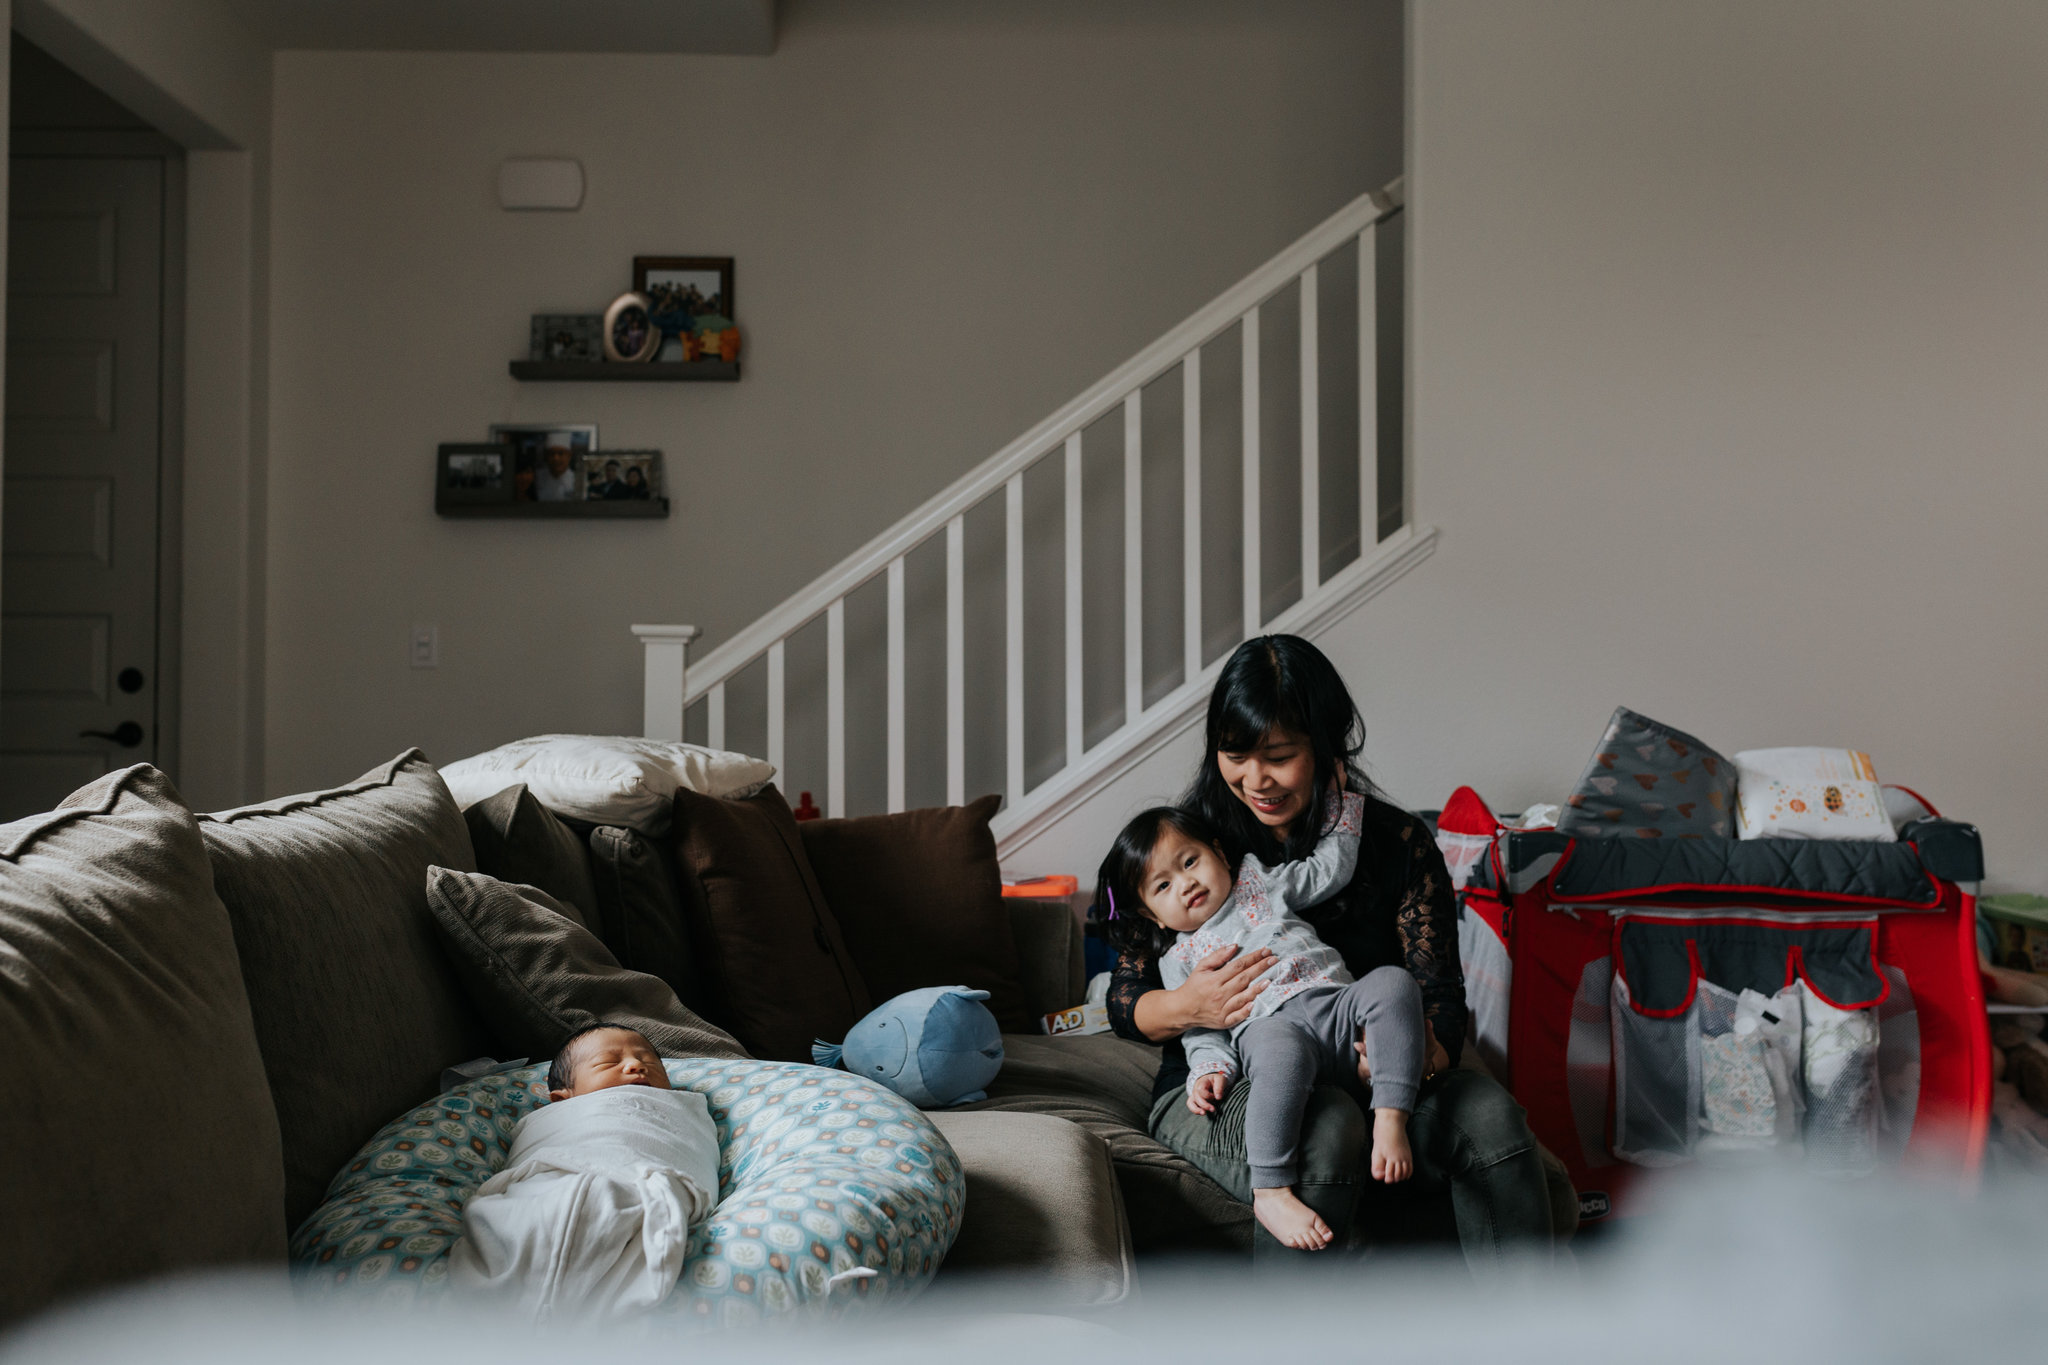 San-Francisco-Bay-Area-And-East-Bay-Berkeley-Oakland-Alameda-Documentary-Storytelling-Newborn-Photographer-2